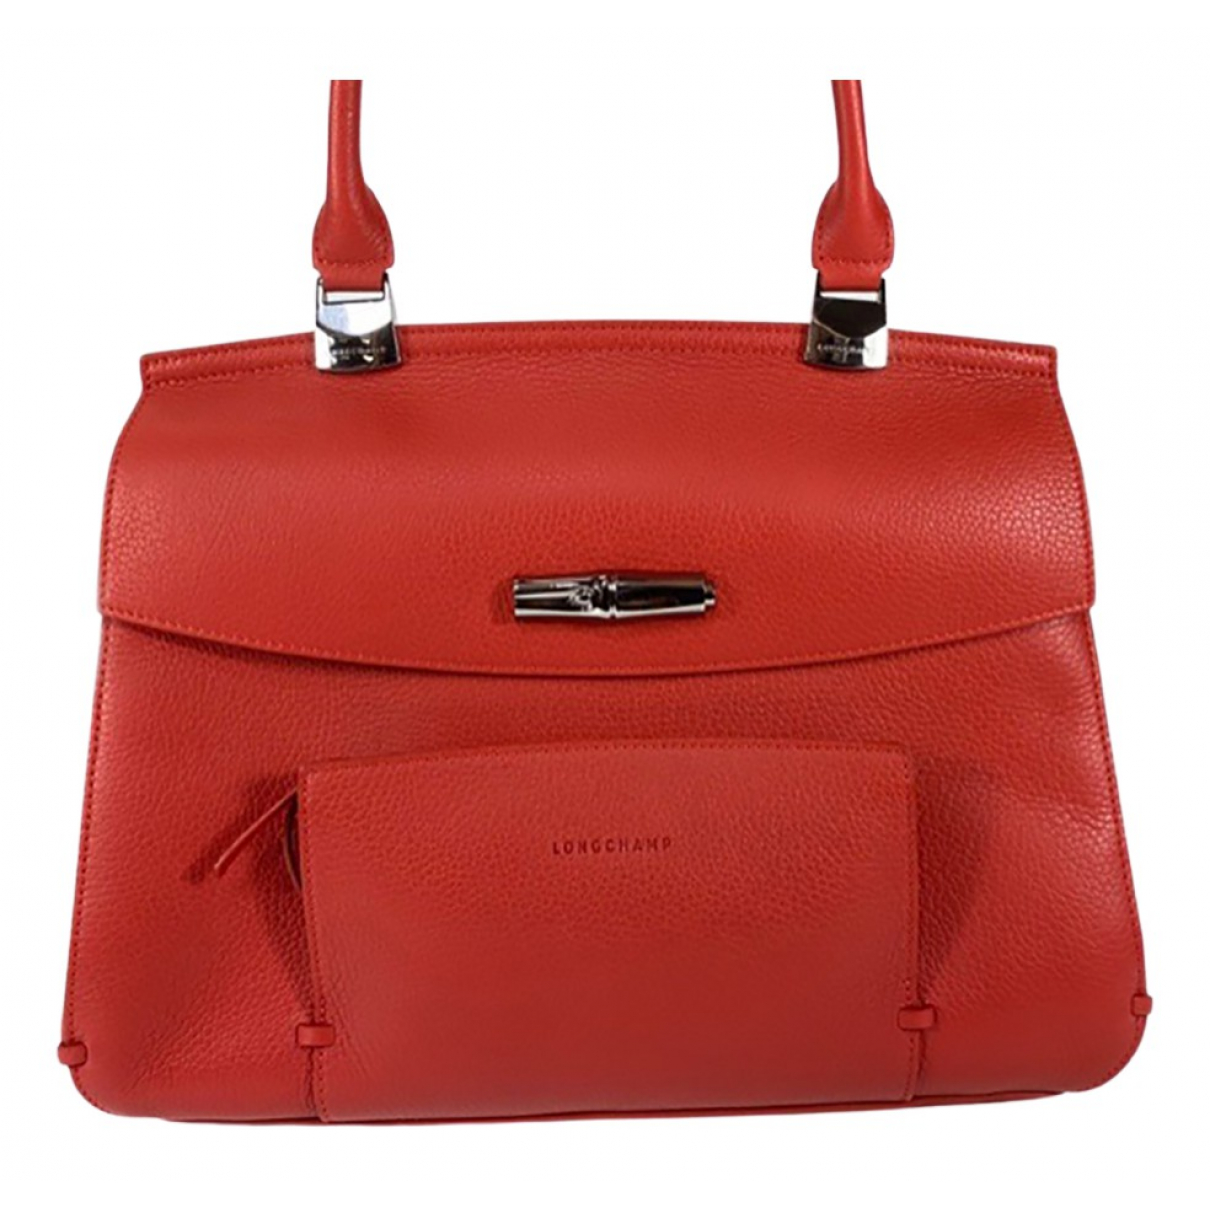 Longchamp \N Red Leather handbag for Women \N